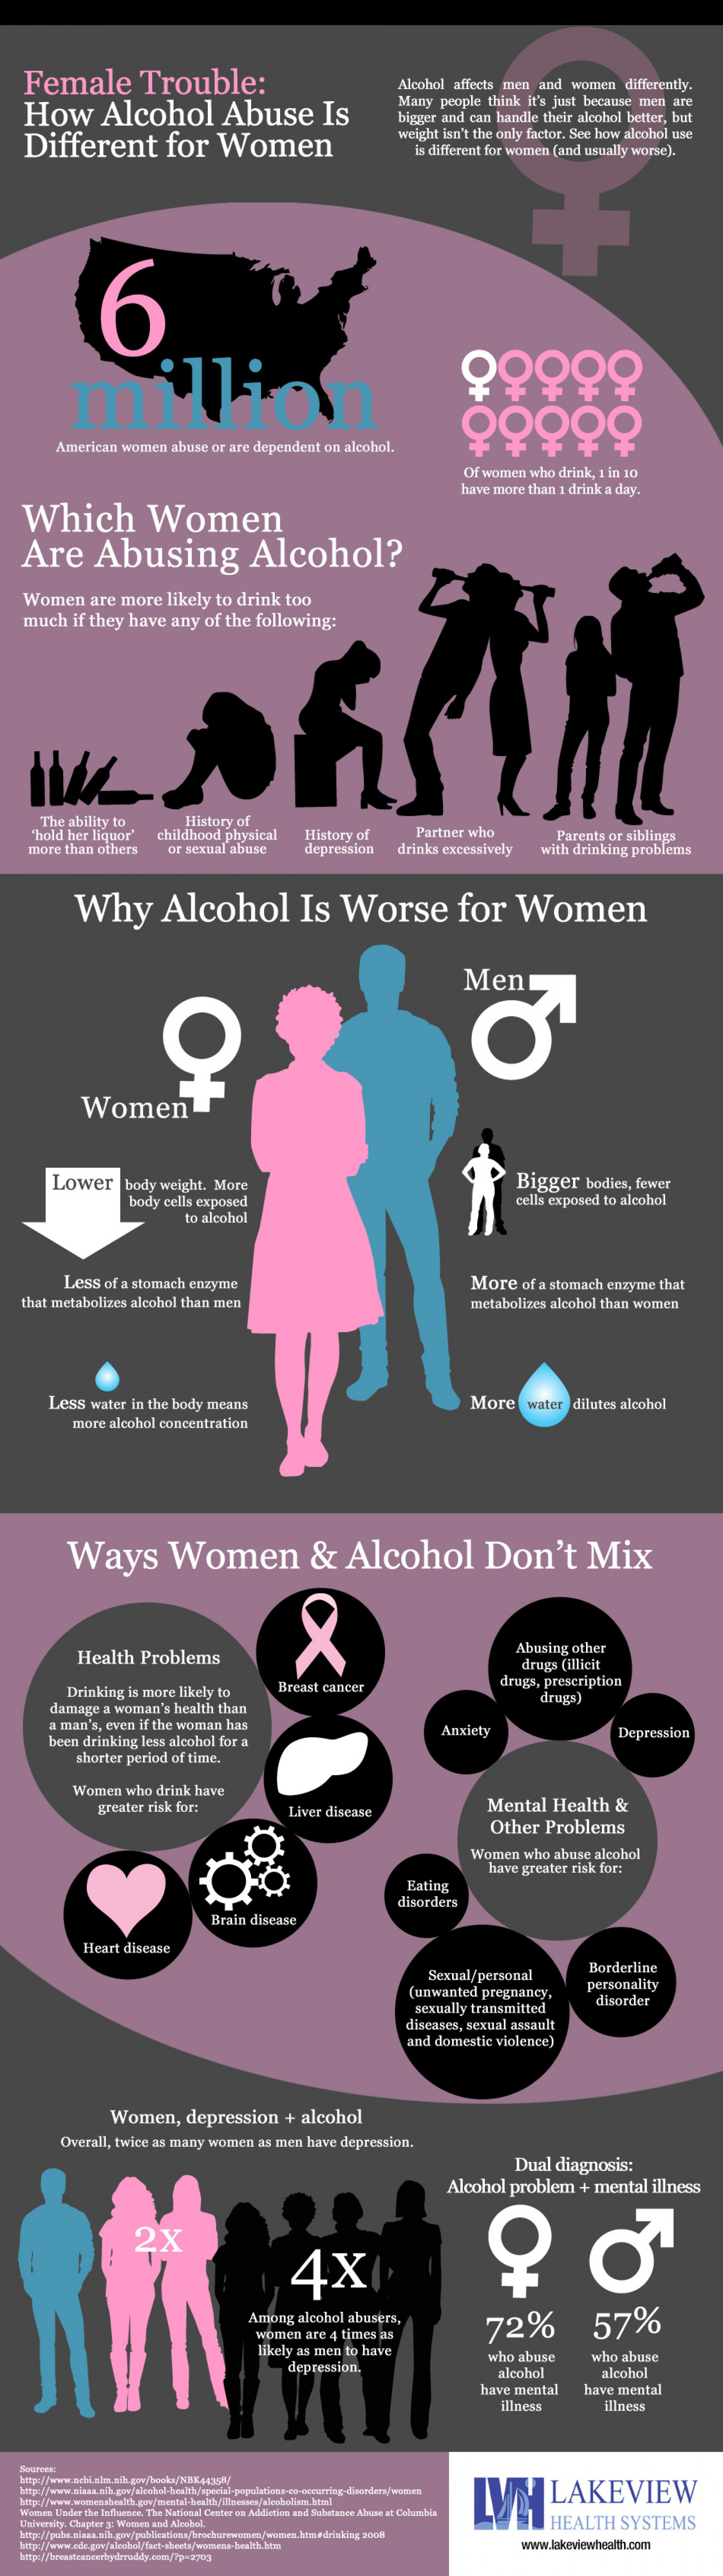 Women and Alcohol Abuse Infographic